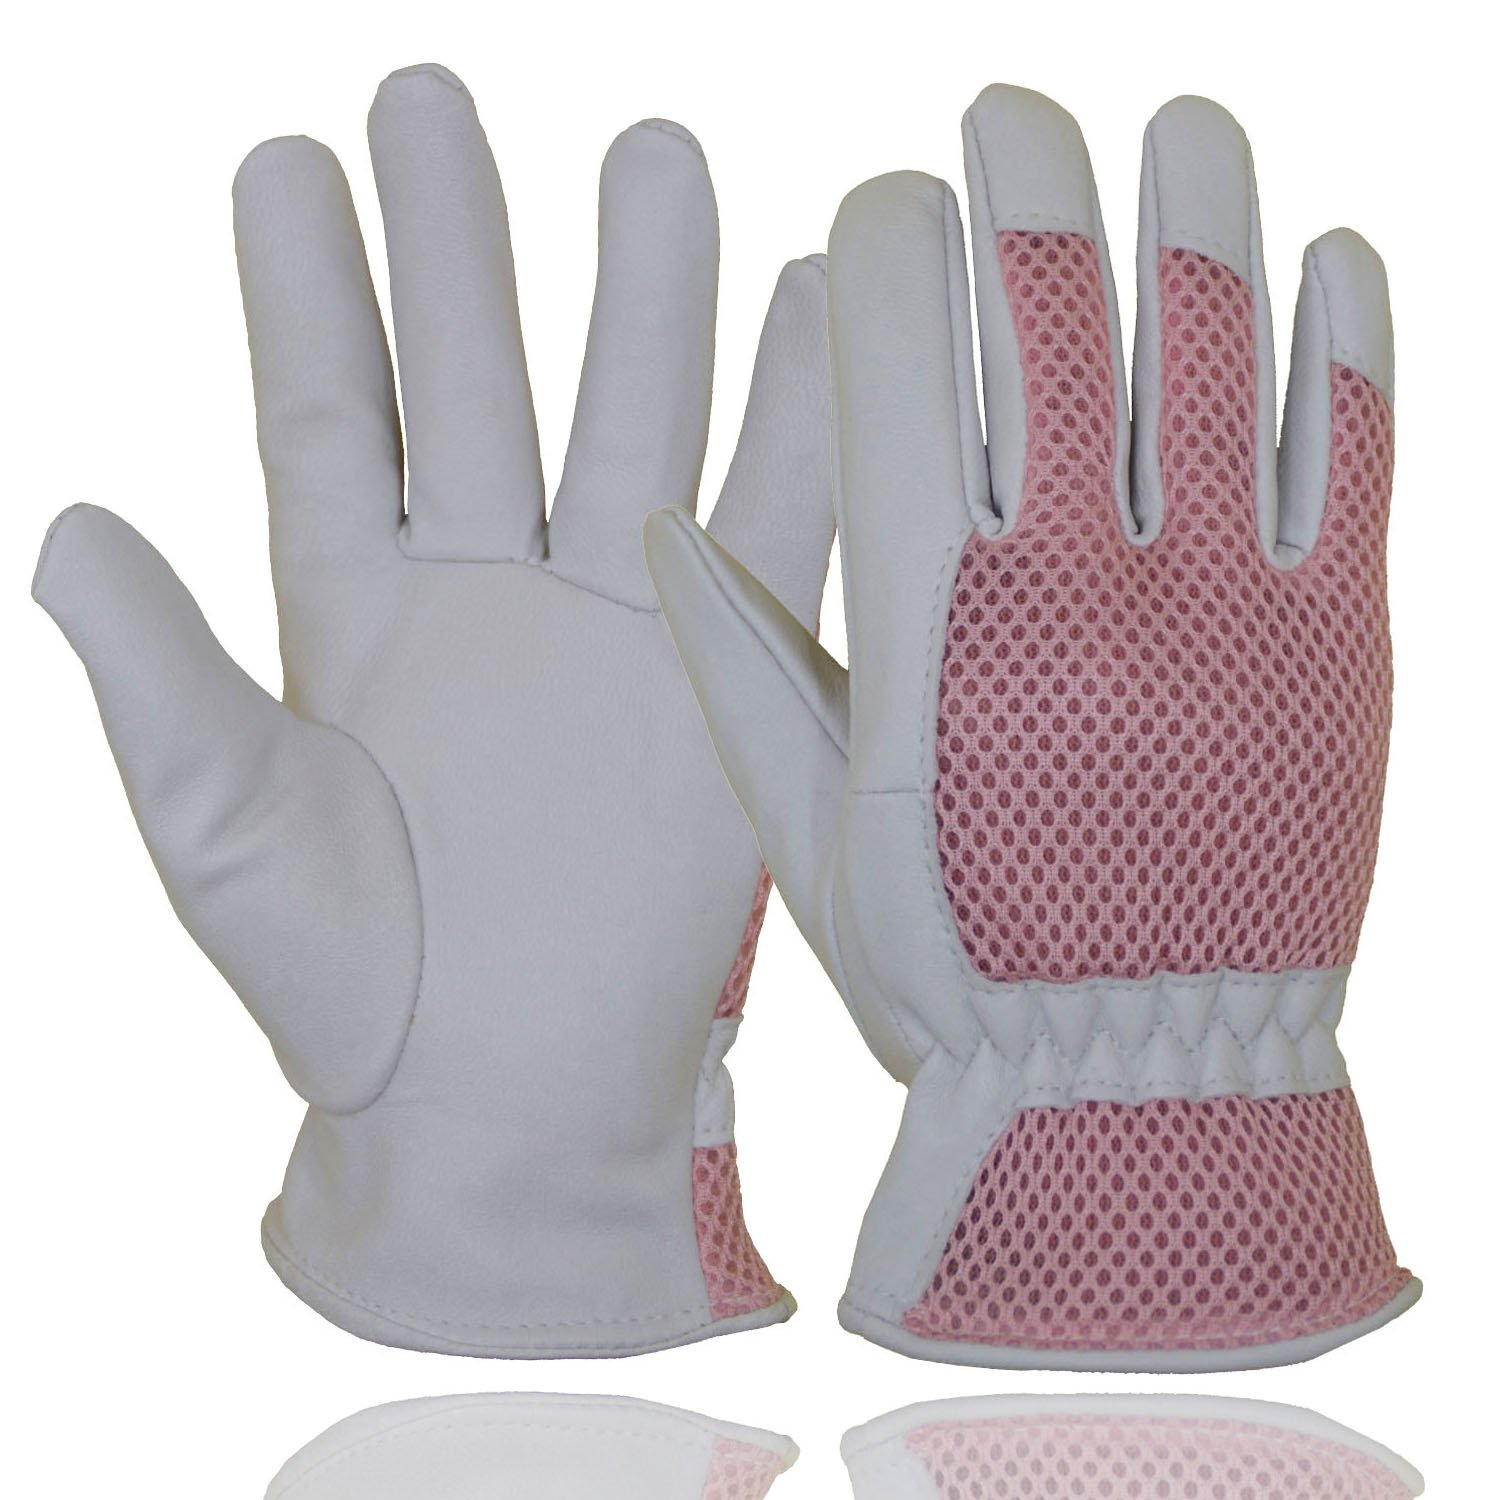 Goatskin Leather Gardening Gloves Women, 3D Mesh Comfort Fit- Improves Dexterity and Breathability Design, Scratch Resistance Garden Working Gloves for Vegetable or Pruning Roses (Small/Pink)